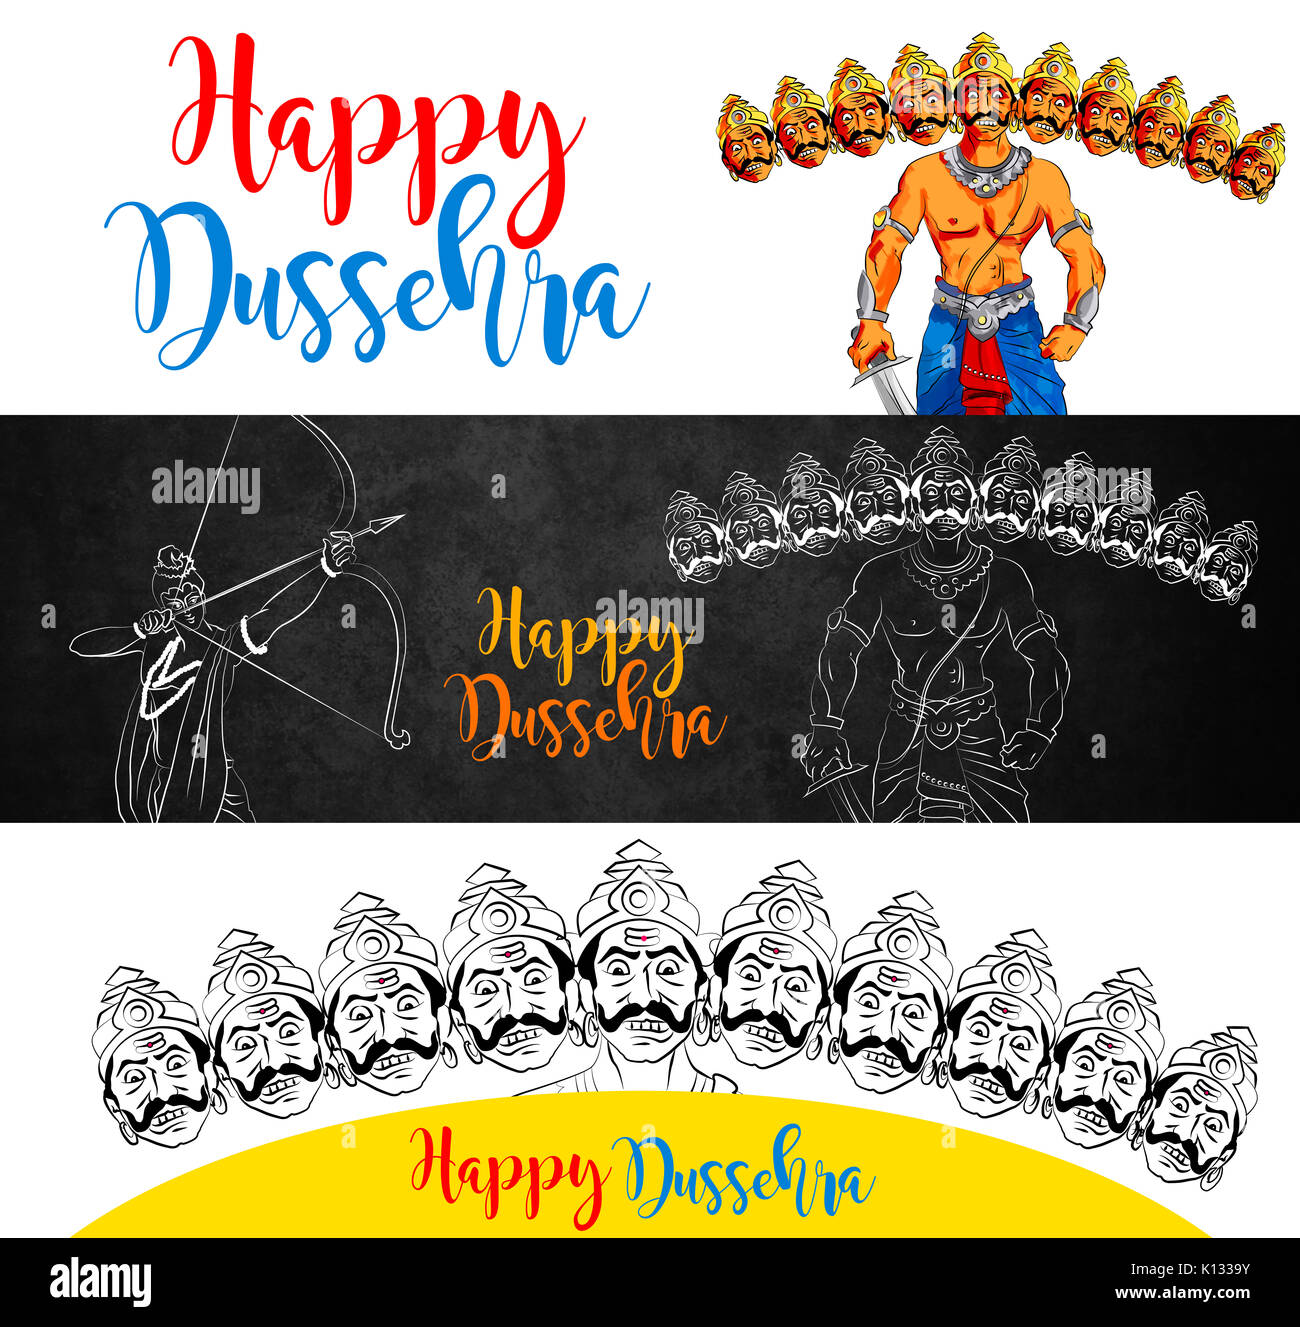 Antique Stock Illustration Of Happy Dussehra Greeting Card Happy